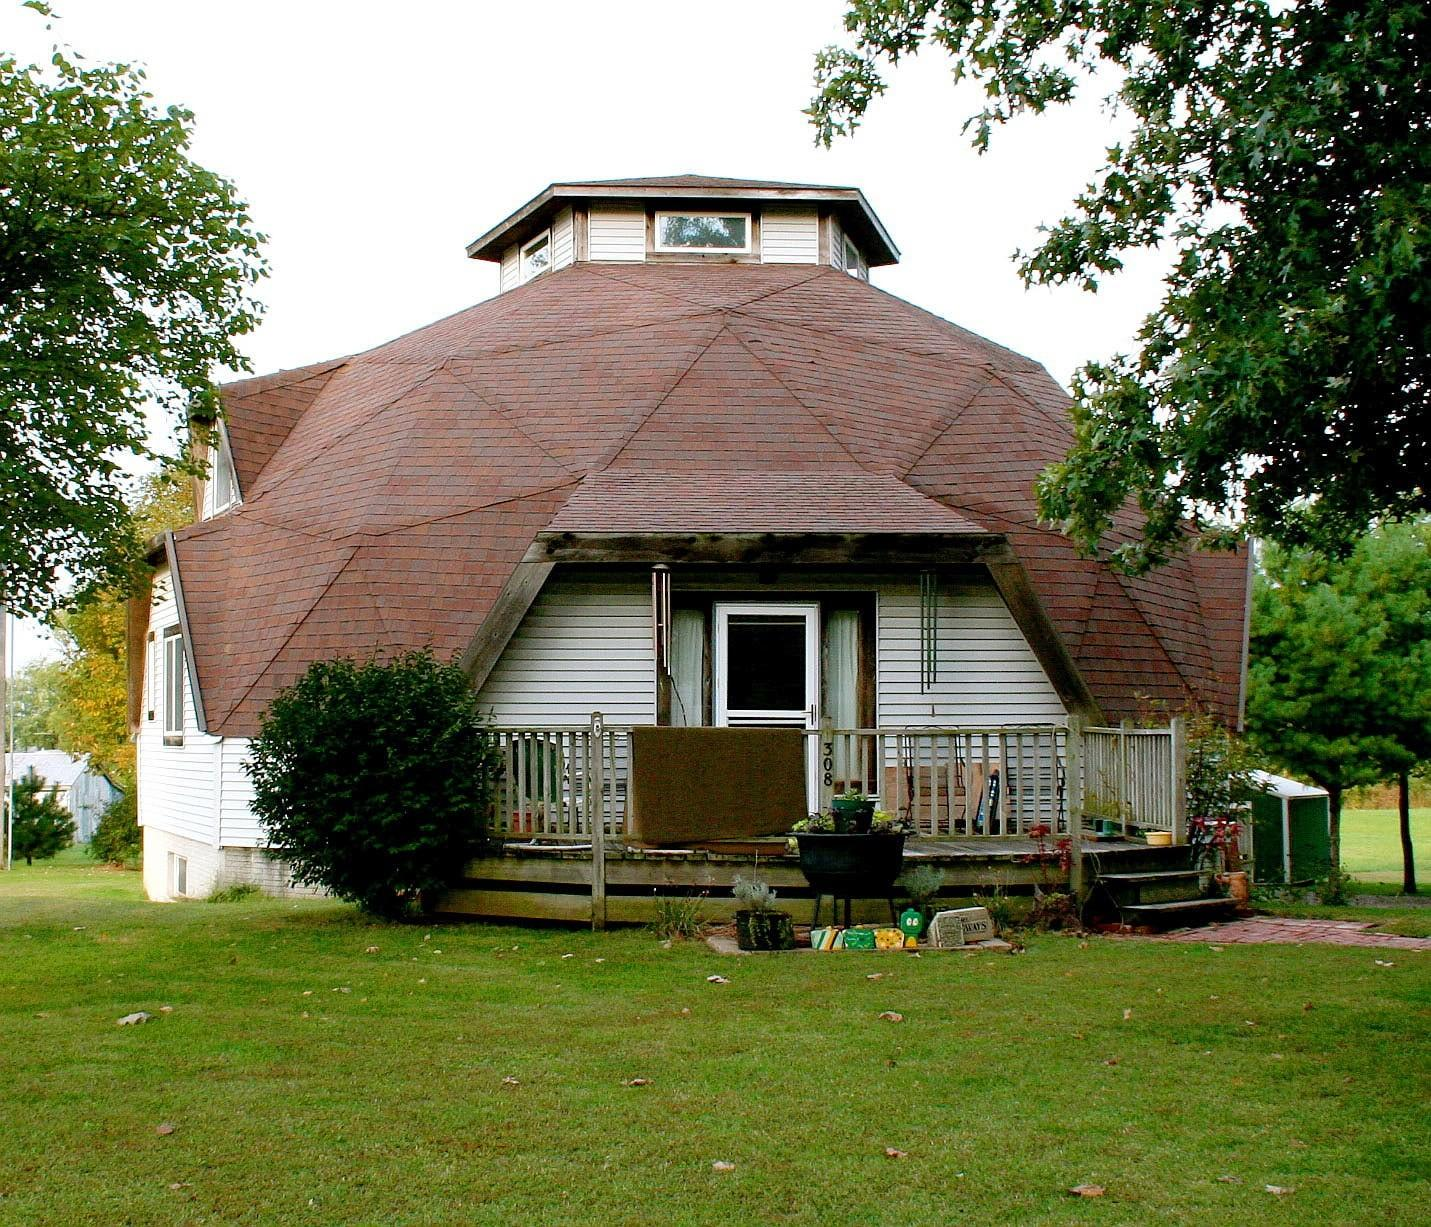 Project Gridless Geodesic Homes